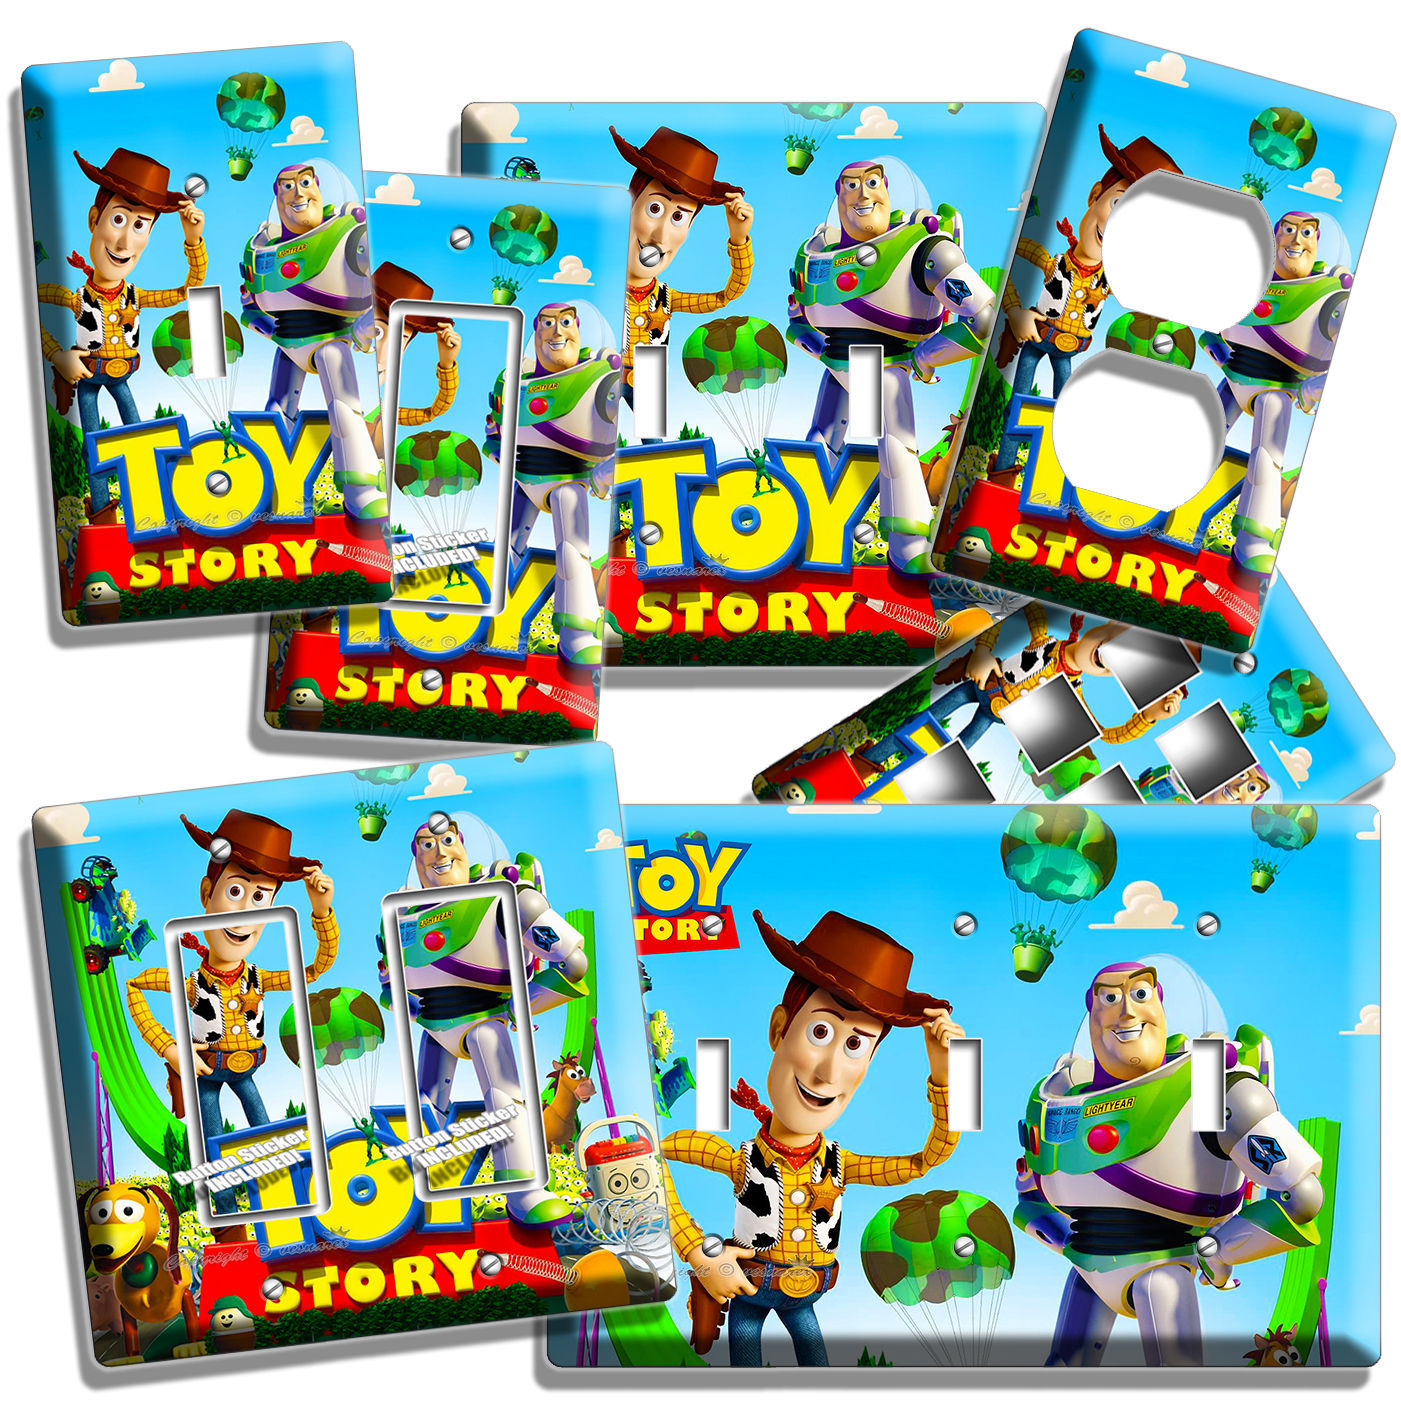 Toy Story Wall Light : TOY STORY WOODY BUZZ LIGHTYEAR LIGHT SWITCH WALL PLATE OUTLET KIDS BEDROOM DECOR - Other